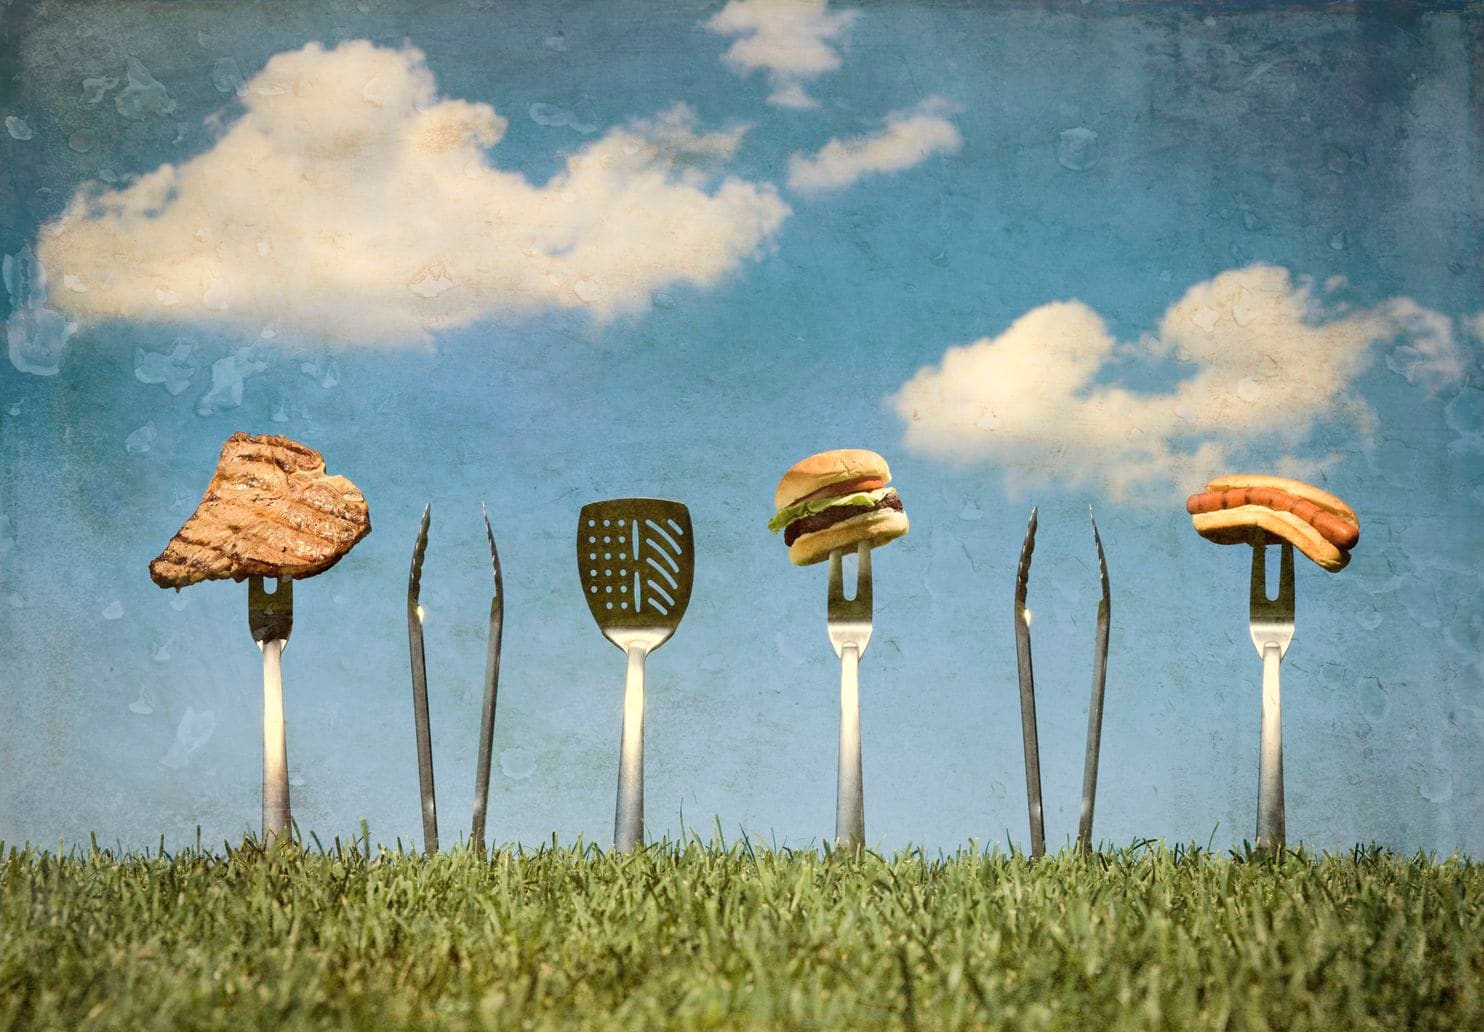 Five Food Safety Mistakes That Can Ruin Your Summer Cookout